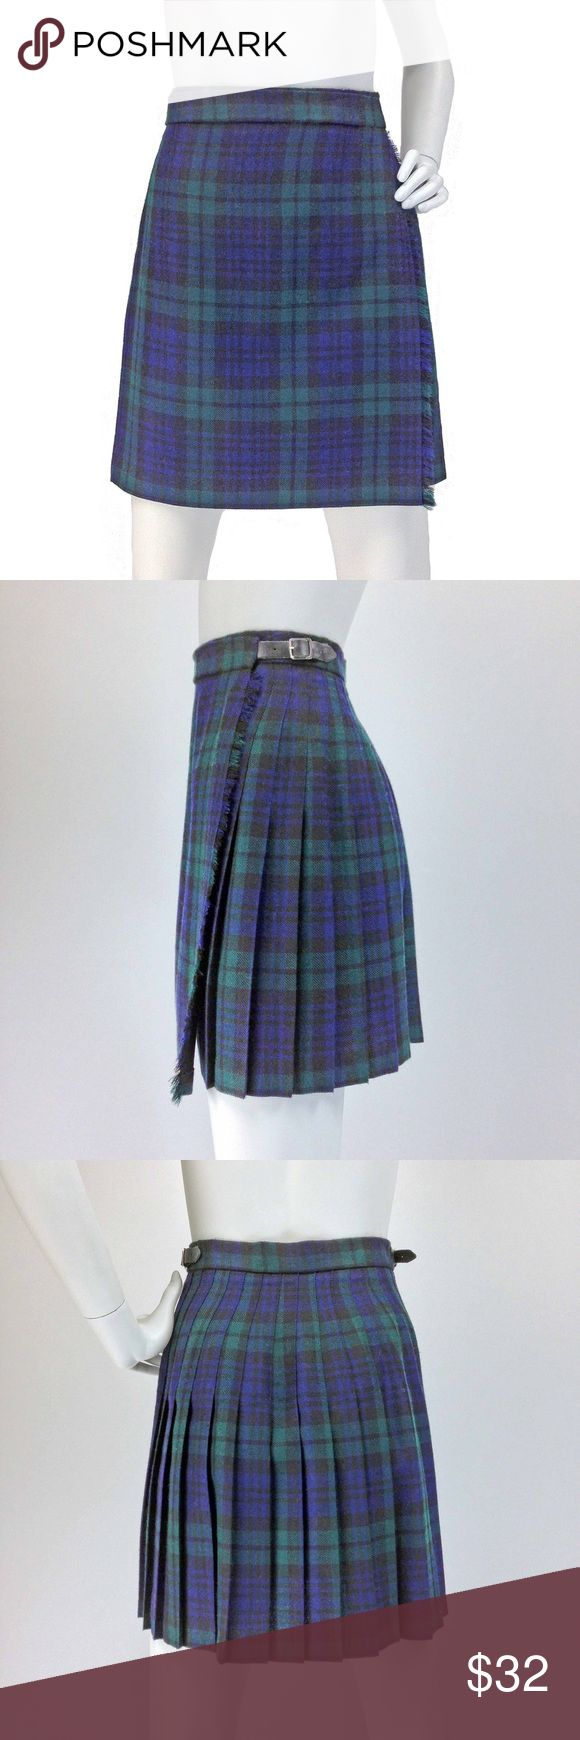 VINTAGE KILT | Blackwatch Plaid Pleated Skirt One of my faves! The classic vintage kilt by Highland Home in perfect Blackwatch plaid *-*!!  •Classic wrap construction •100% wool Blackwatch plaid (navy blue, dark green, black) •Pleated •Fringed edge •Black leather straps + silvertone metal buckles closure •Made in Scotland CONDITION: V good vtg condition with 2 tiny holes in back-not noticeable due to the pleats-see last pic.  •Waist:28-30 •Hips:Free  •Length:20  ☑️Top Rated Seller ☑️Fast…